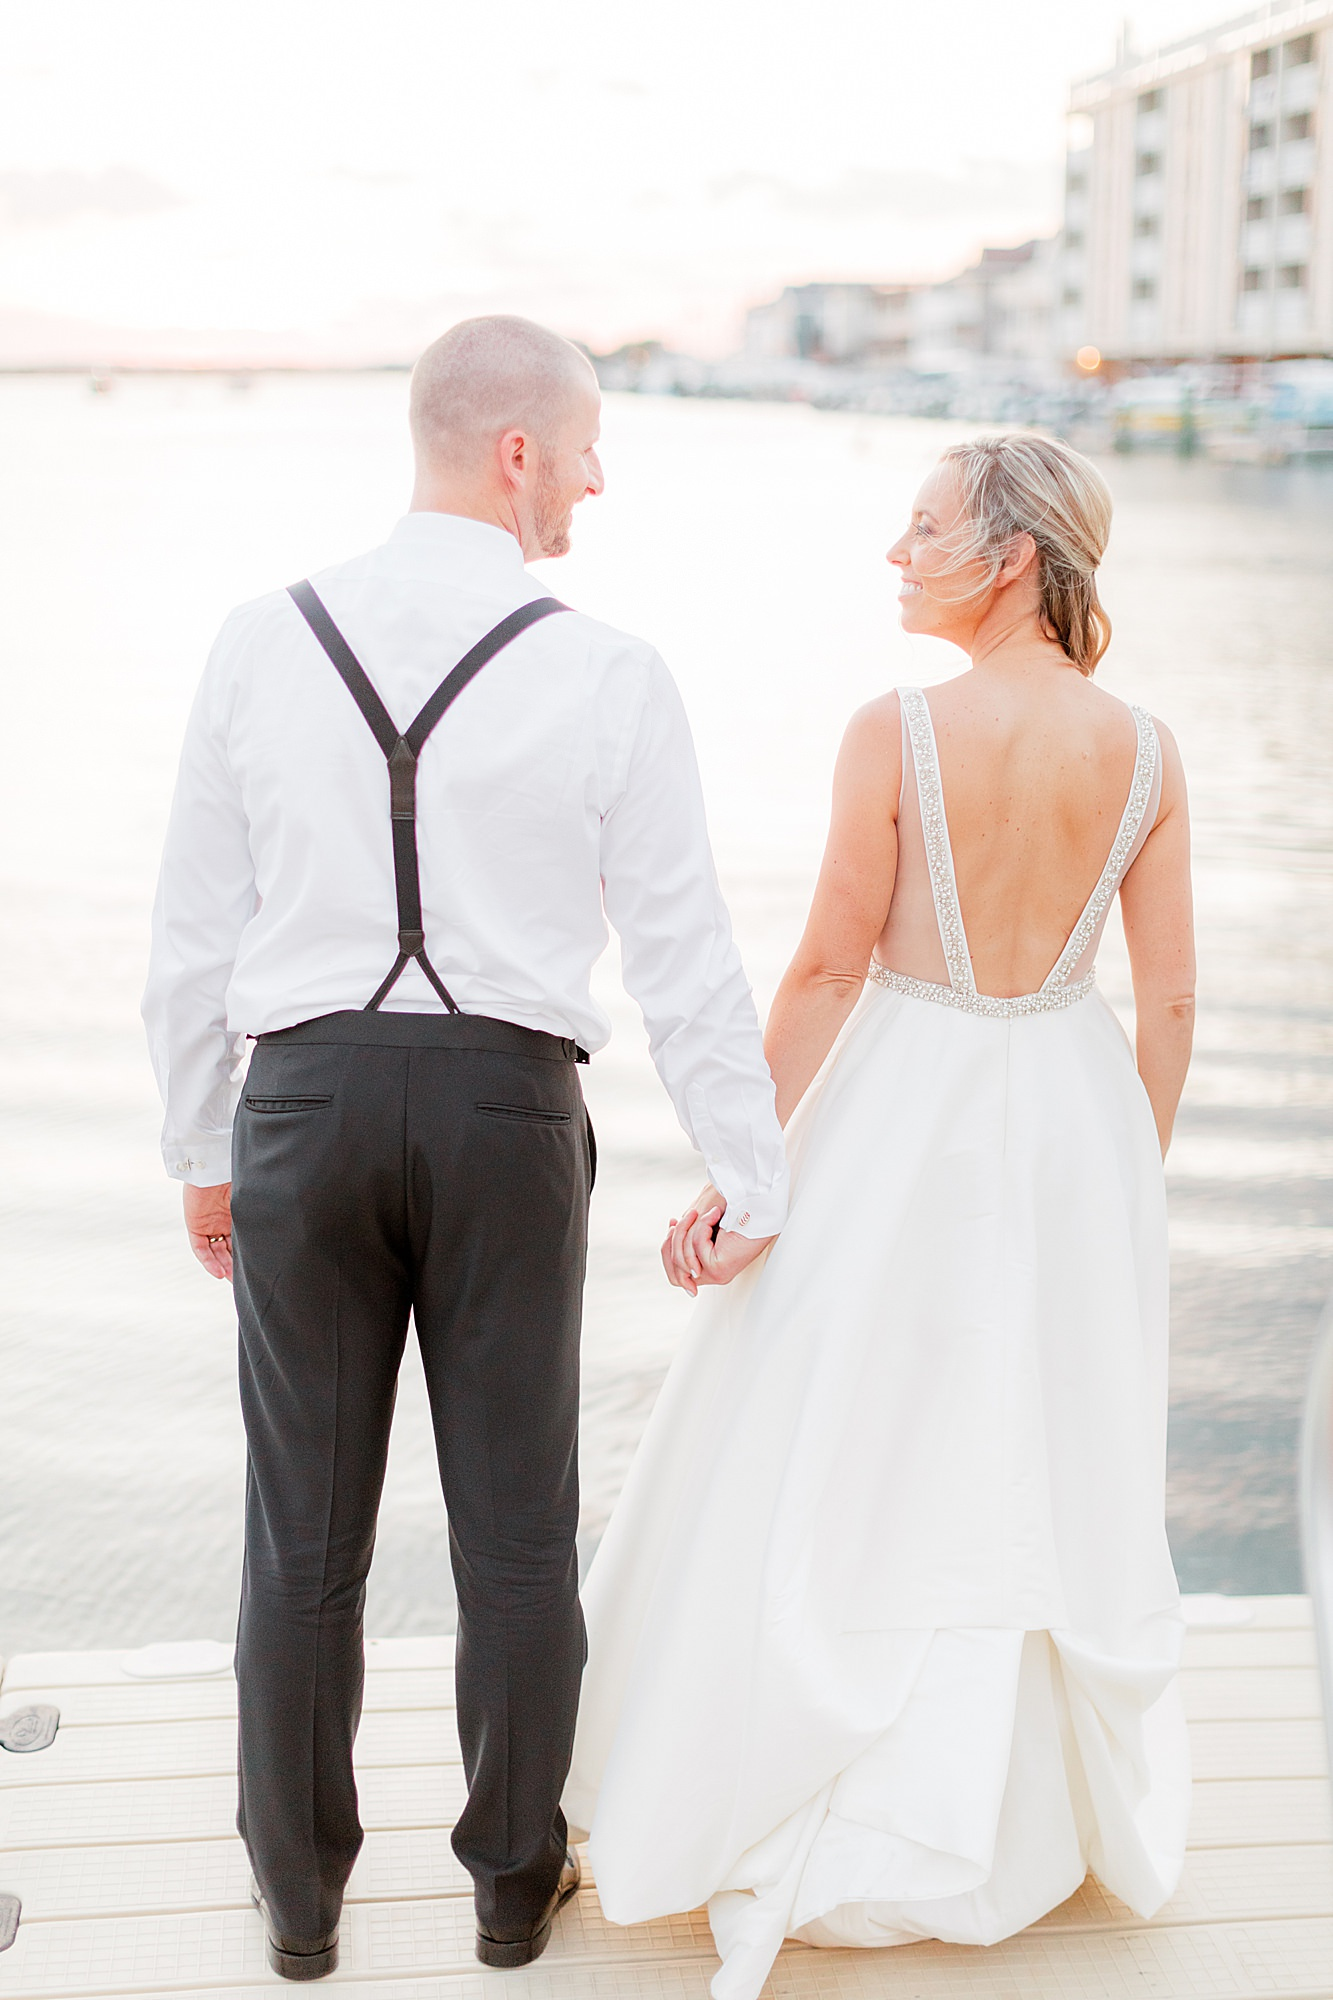 Natural and Vibrant Wedding Photography at the Reeds in Stone Harbor NJ by Magdalena Studios 0066